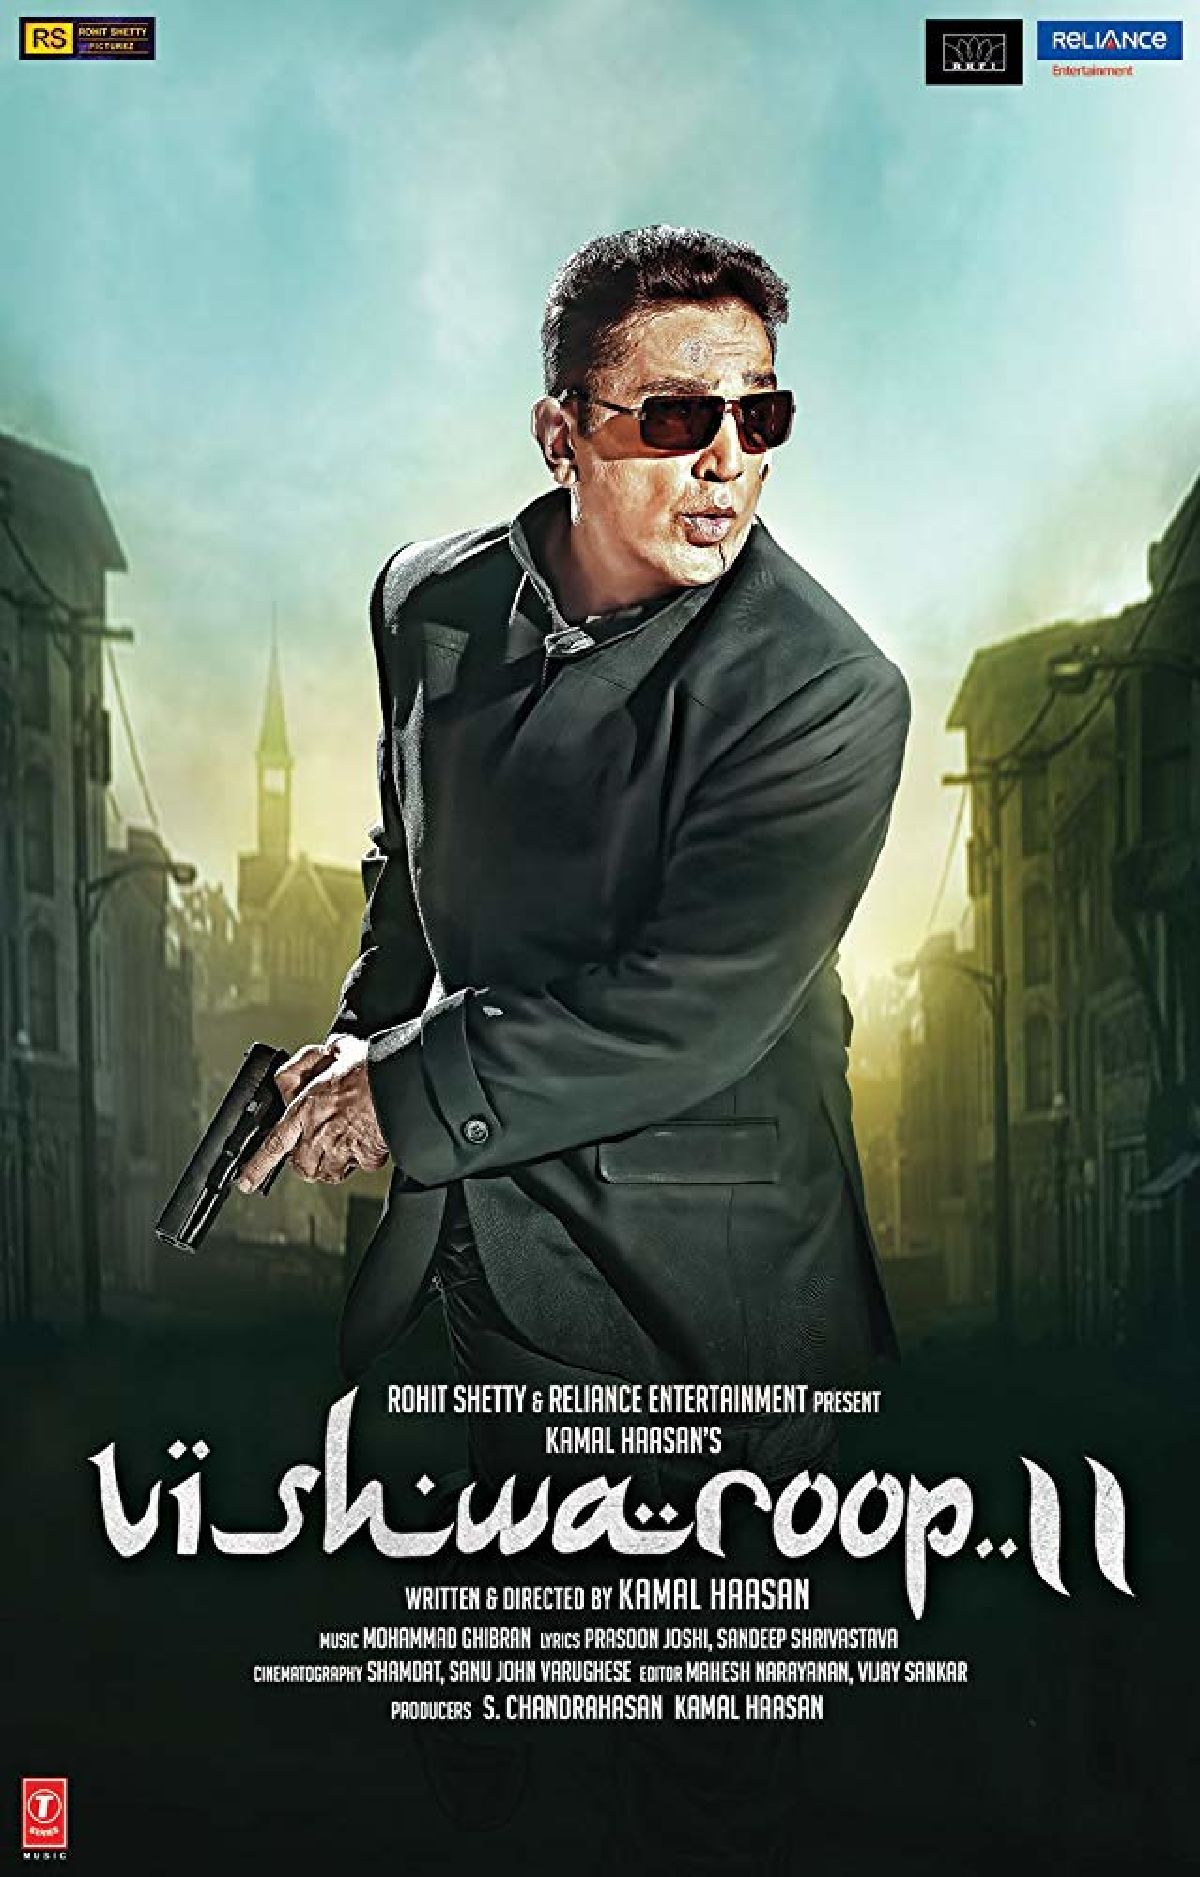 'Vishwaroopam 2' movie poster